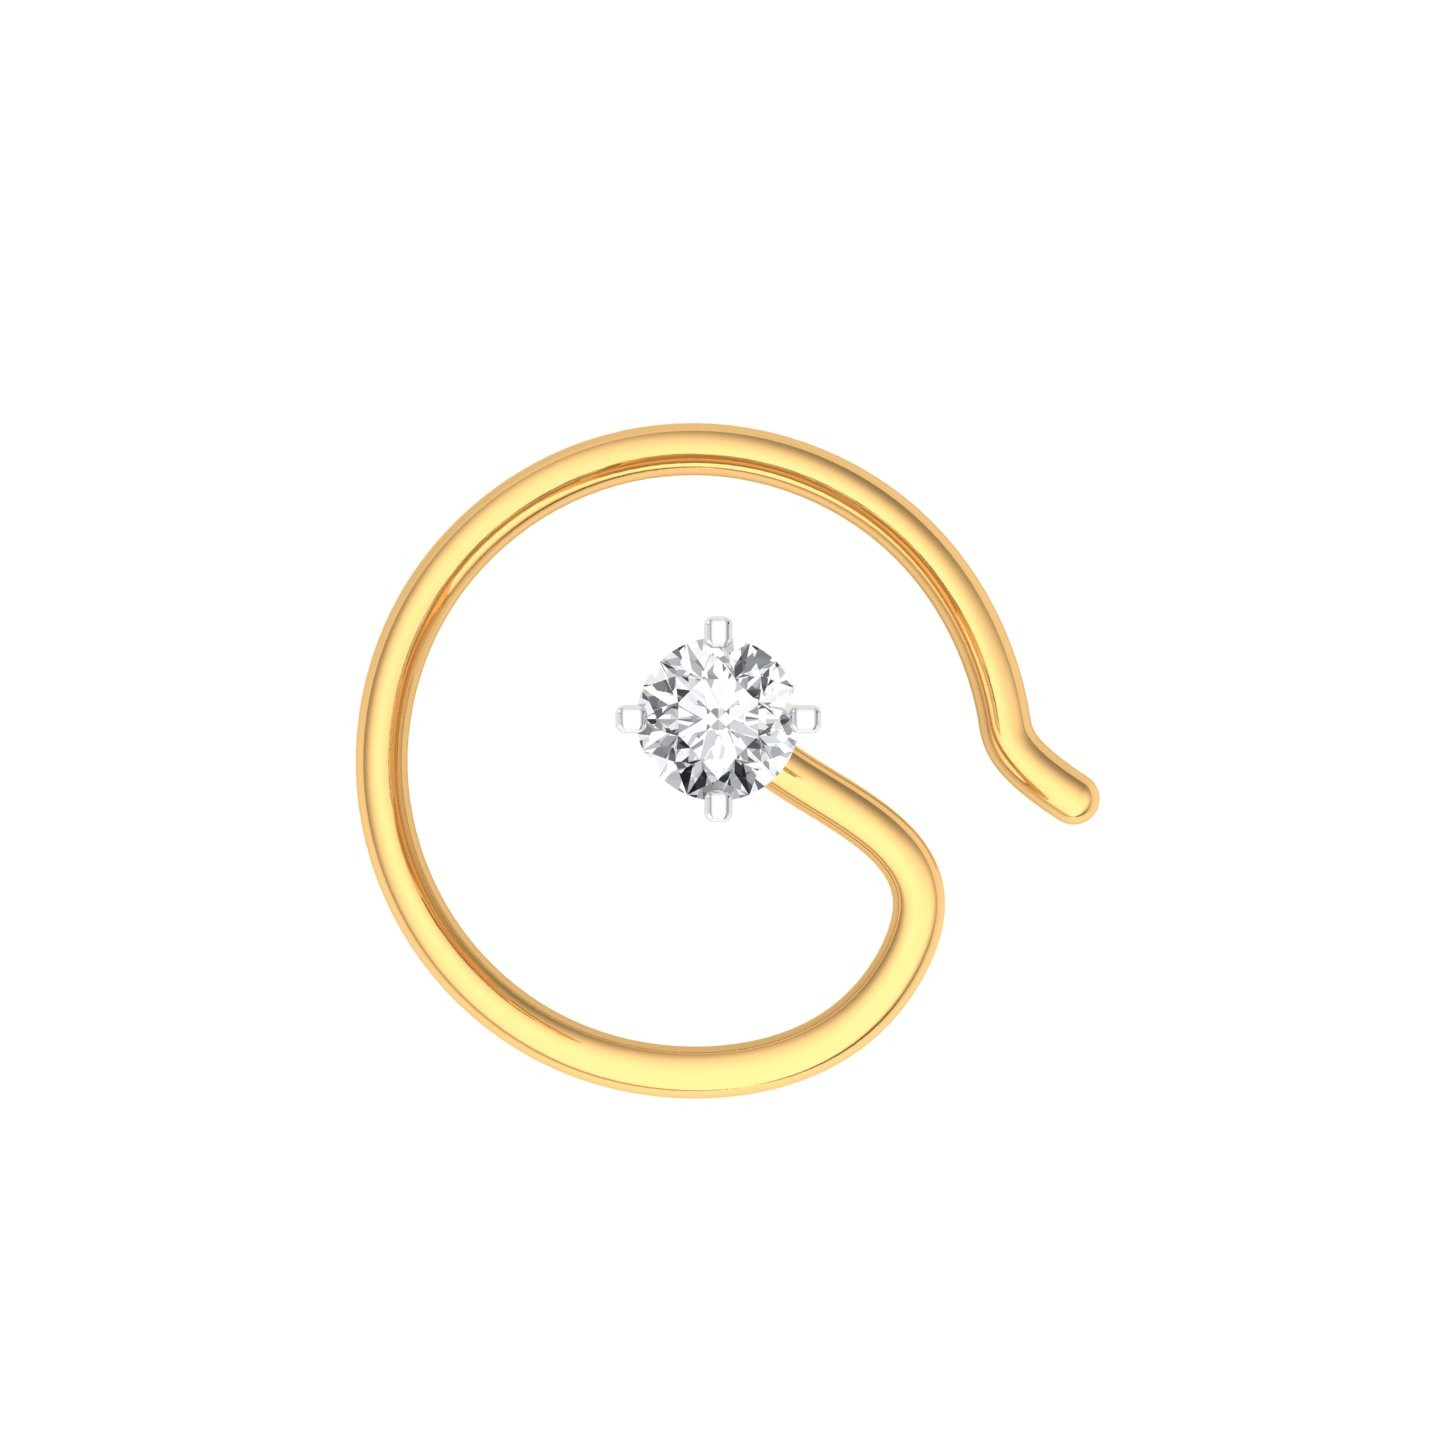 The Classic Hook Nose Pin 0 05 Carat Diamond Jewellery At Best